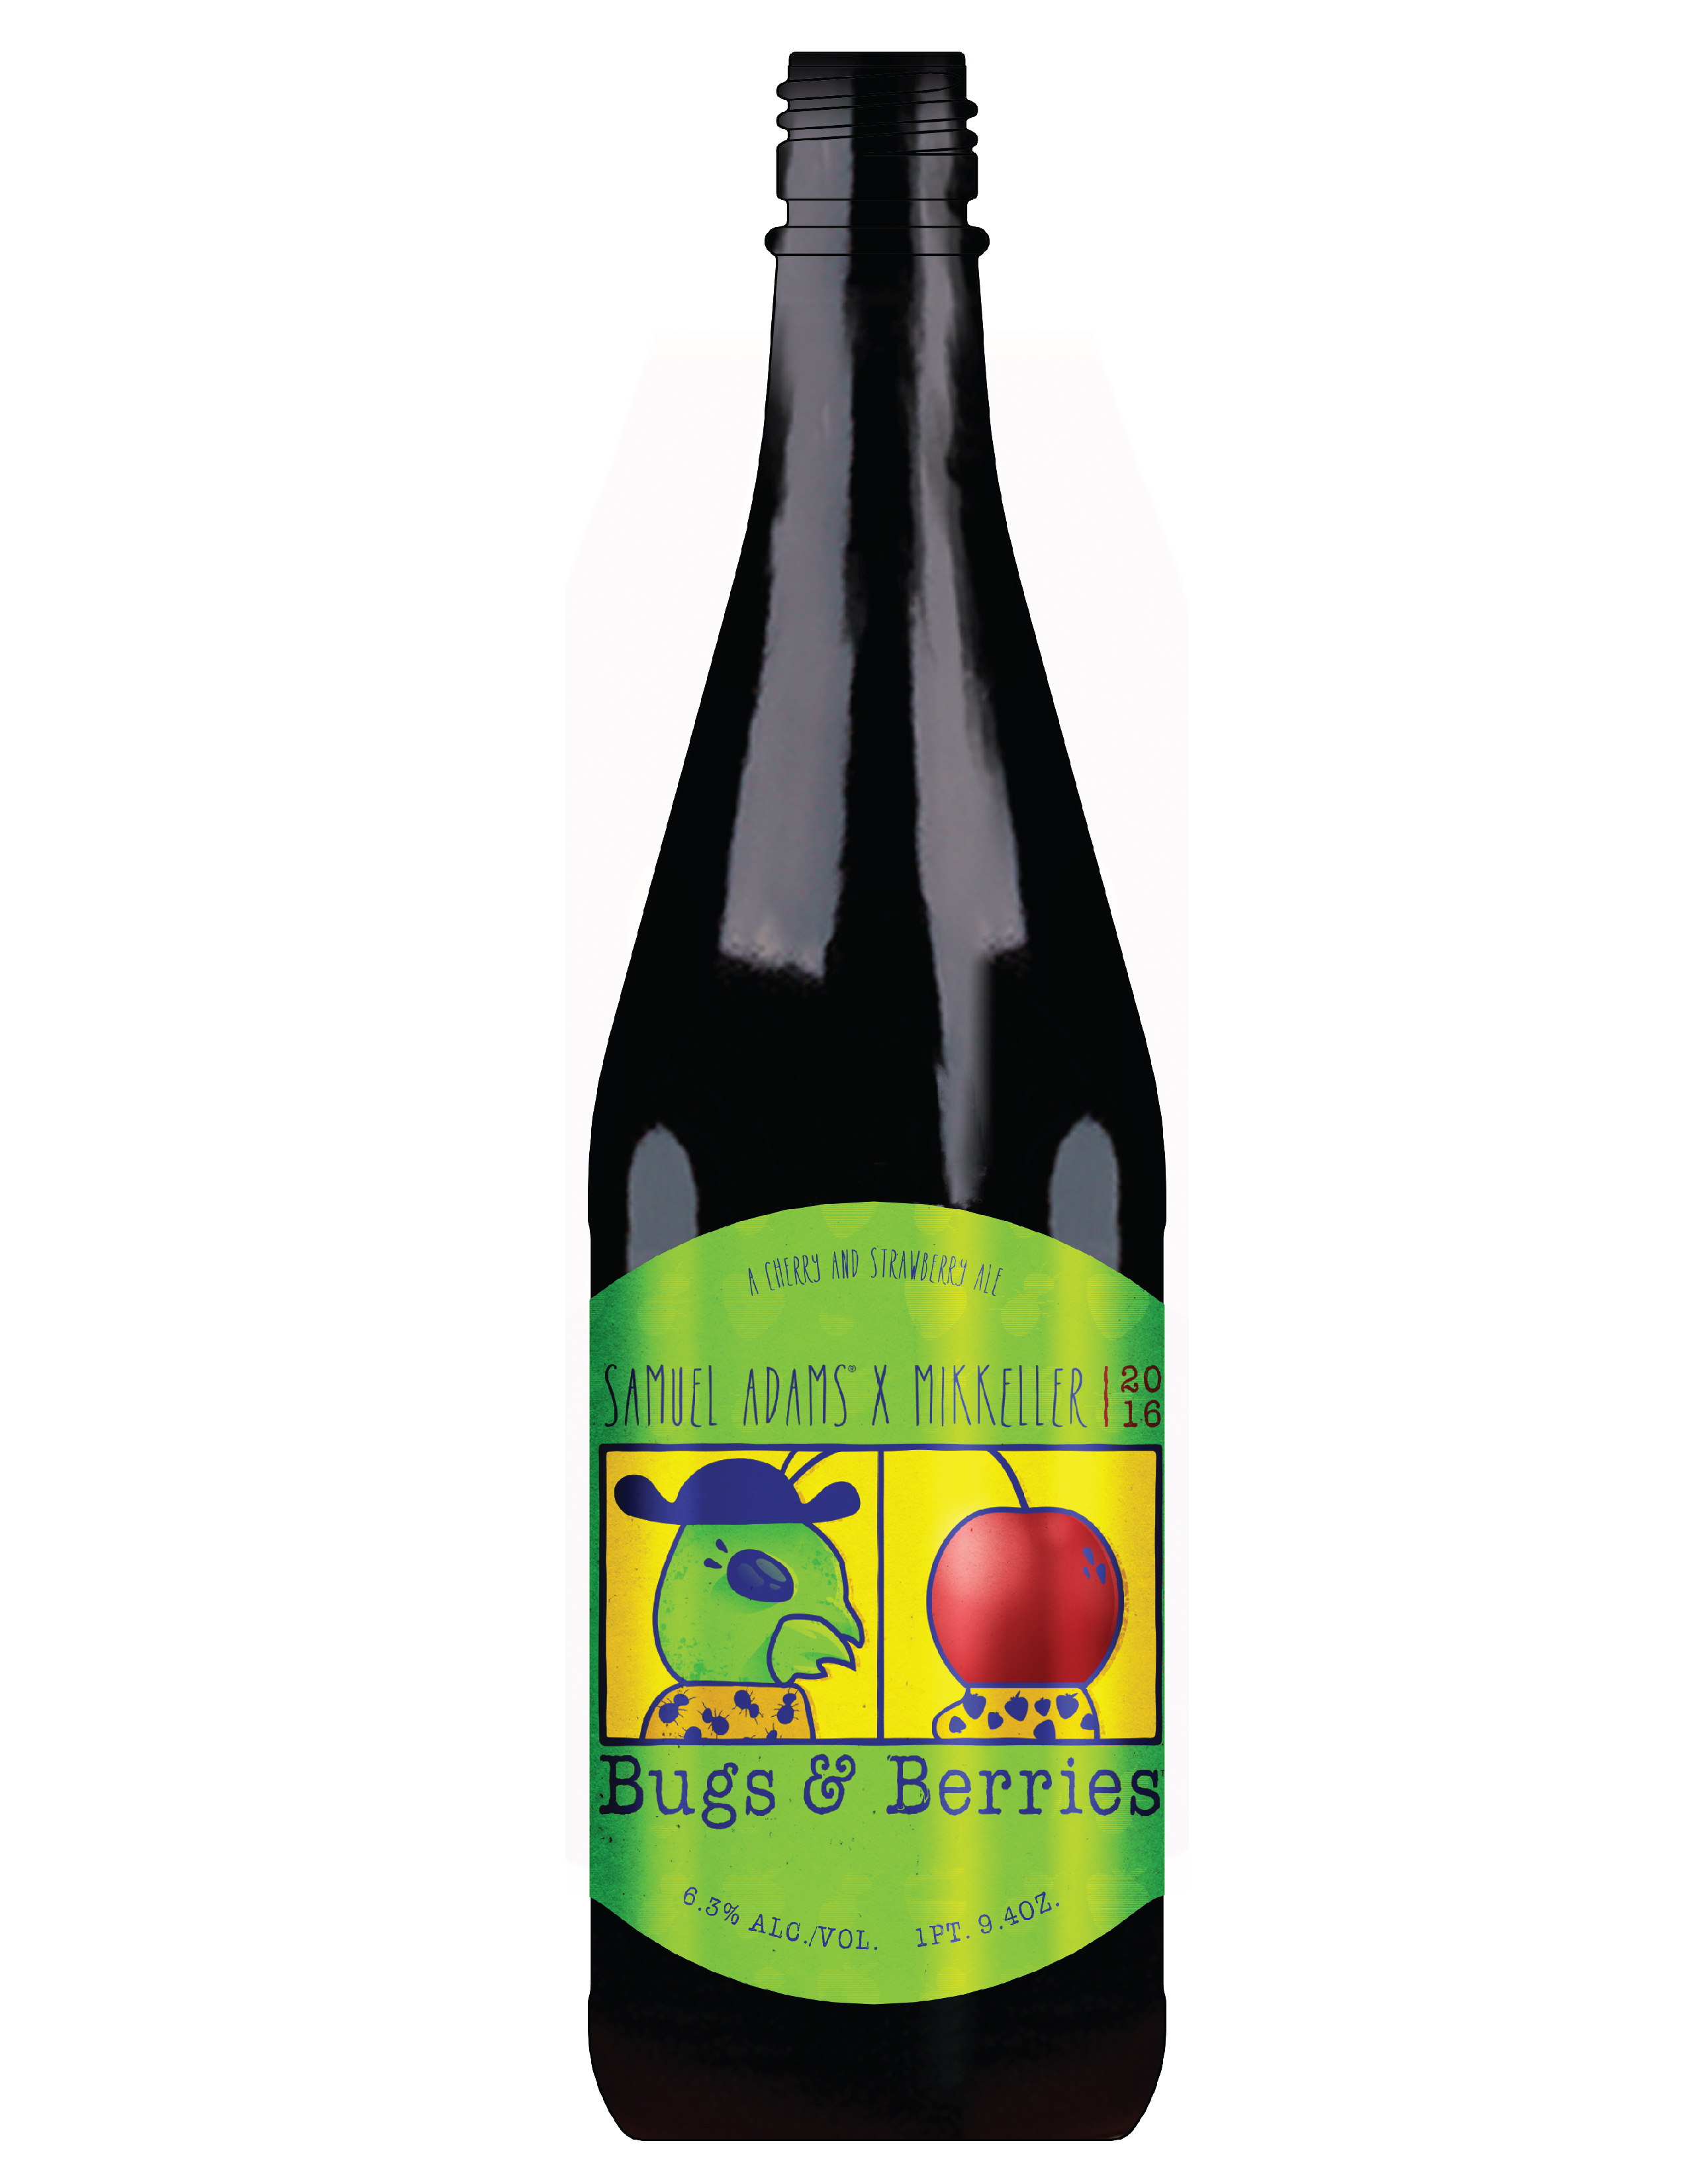 Mikkeller & Samuel Adams Collaboration - Bugs and Berries